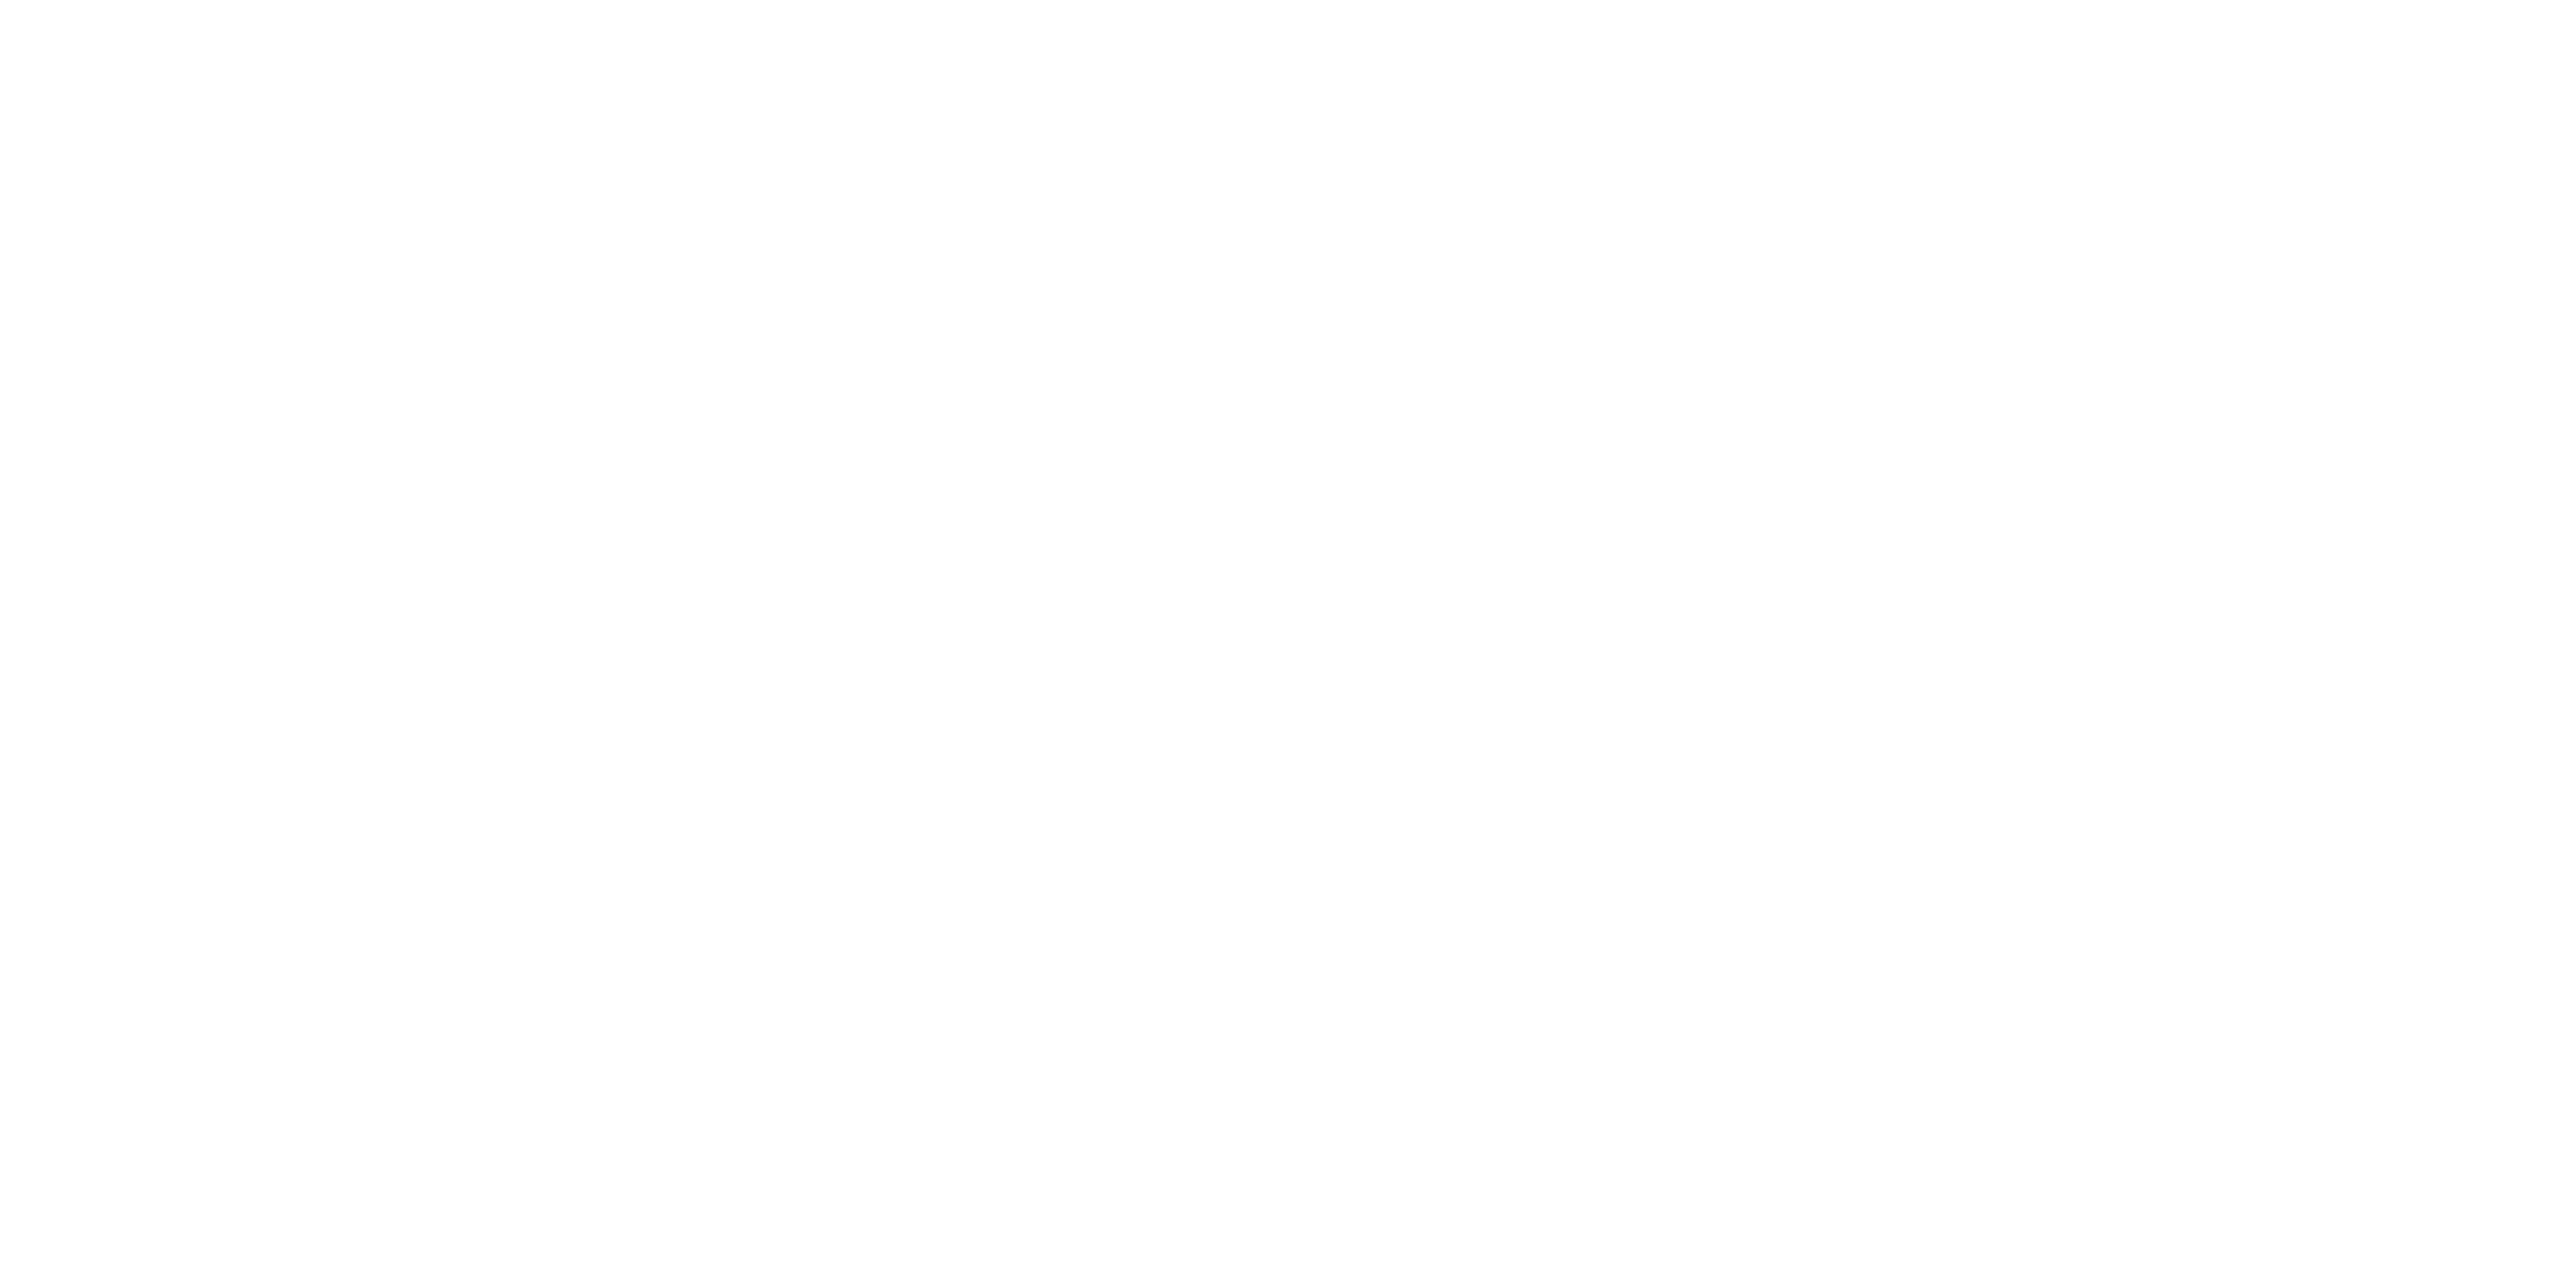 Allocco Design Logo White